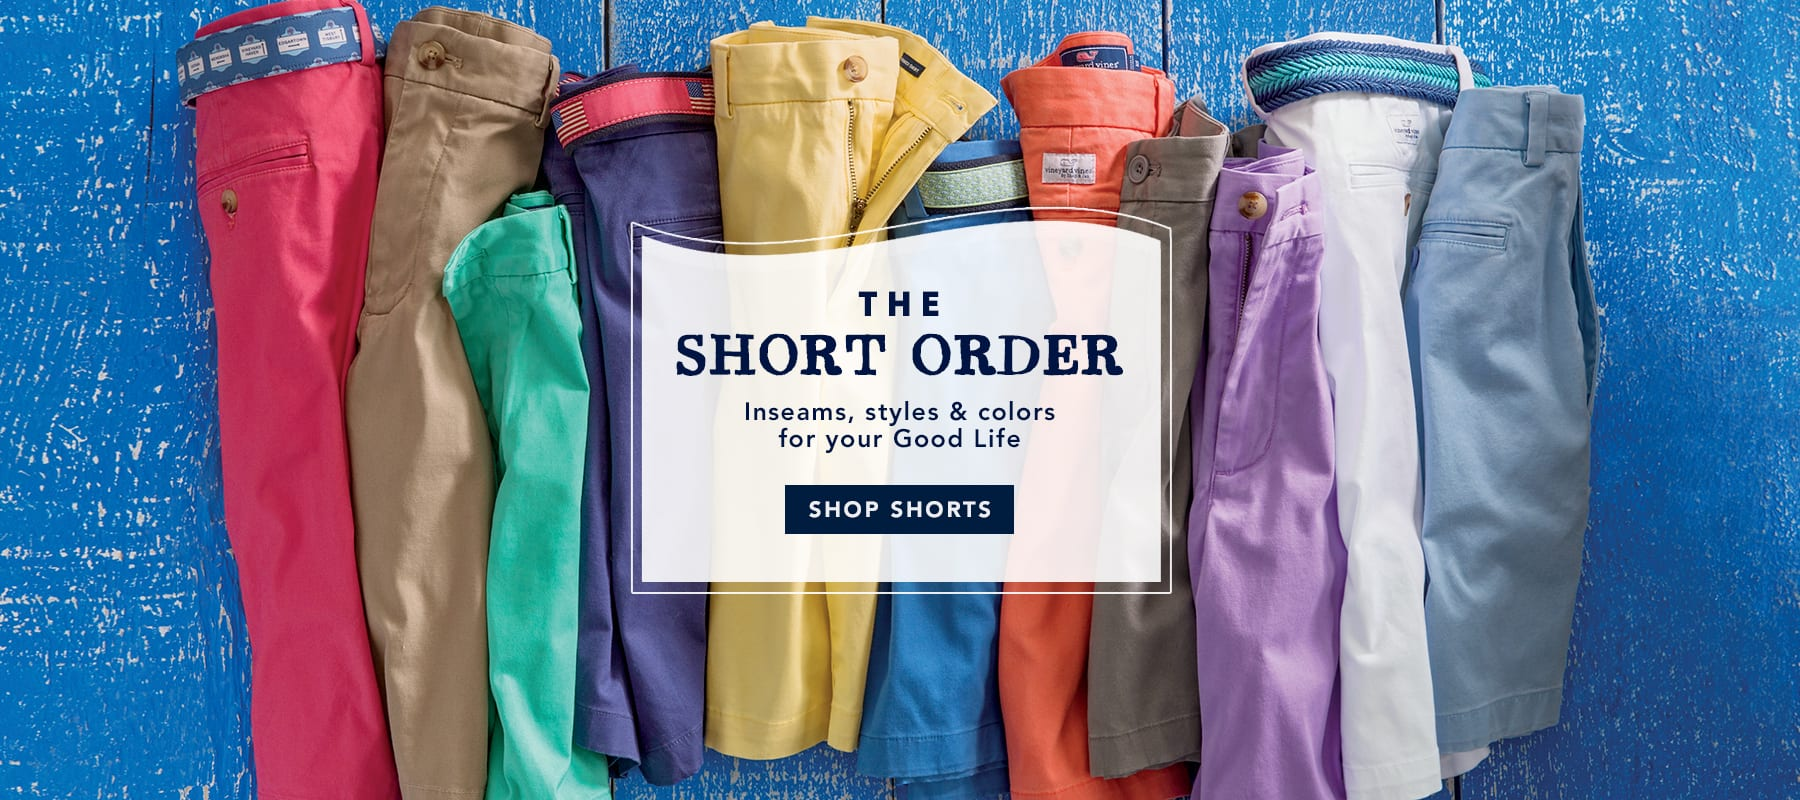 The short order. Inseams, stles & colors for your Good Life. Shop men's shorts.